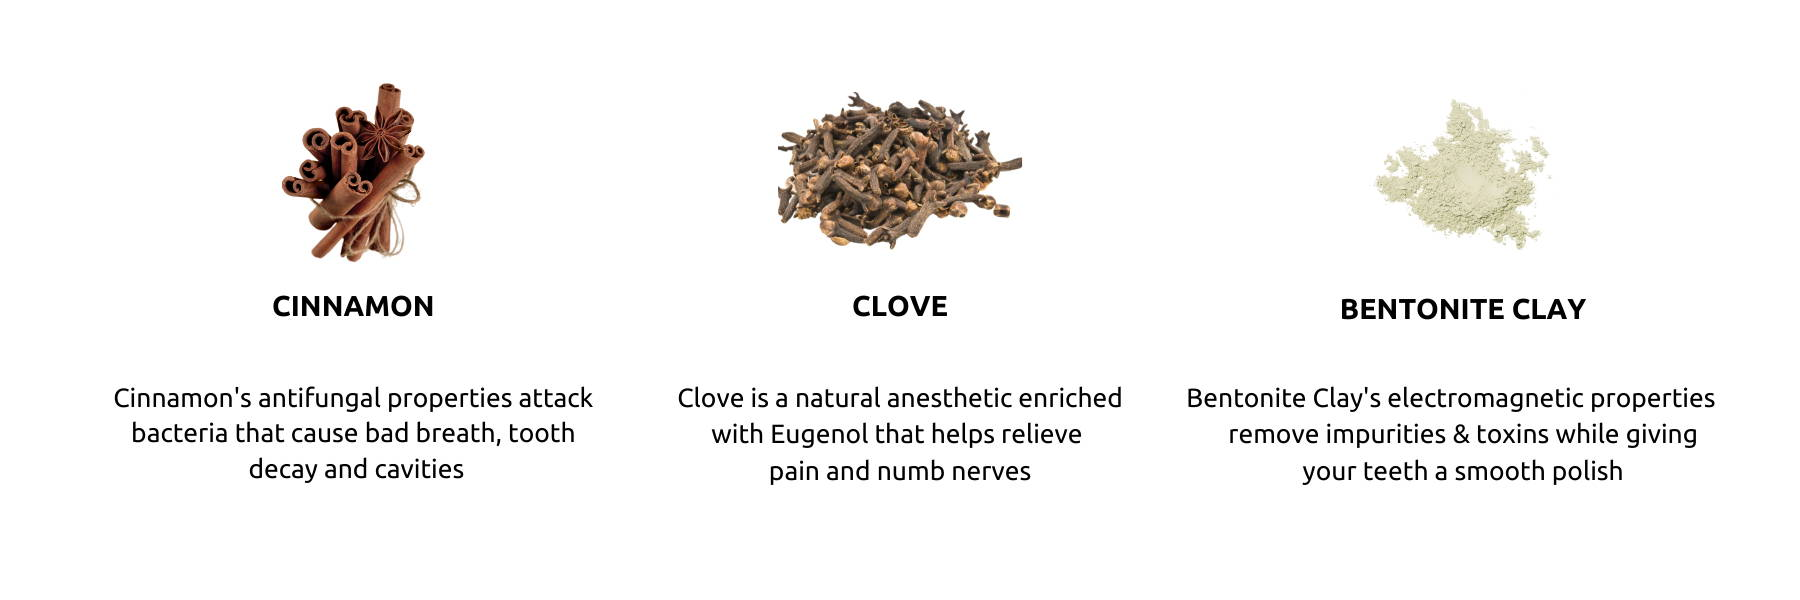 Cinnamon toothpaste was designed especially for sensitive teeth. Clove has been used for hundreds of years as a natural analgesic.